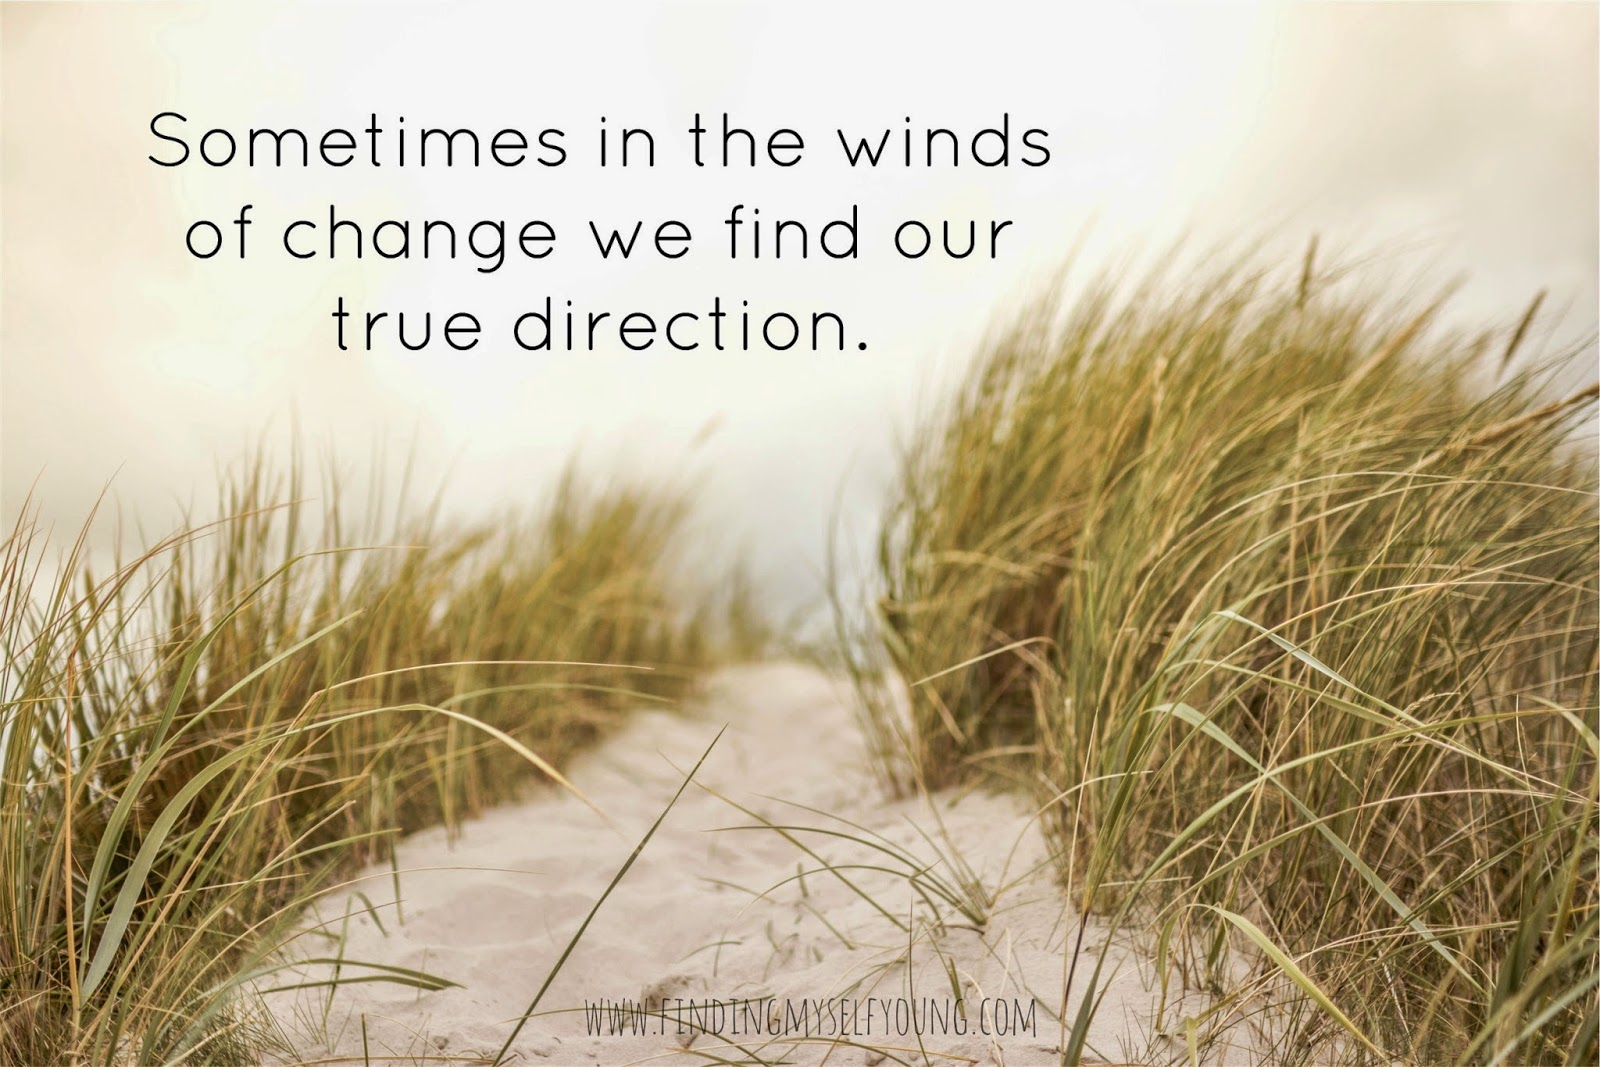 quote - sometimes in the winds of change we find our true direction.